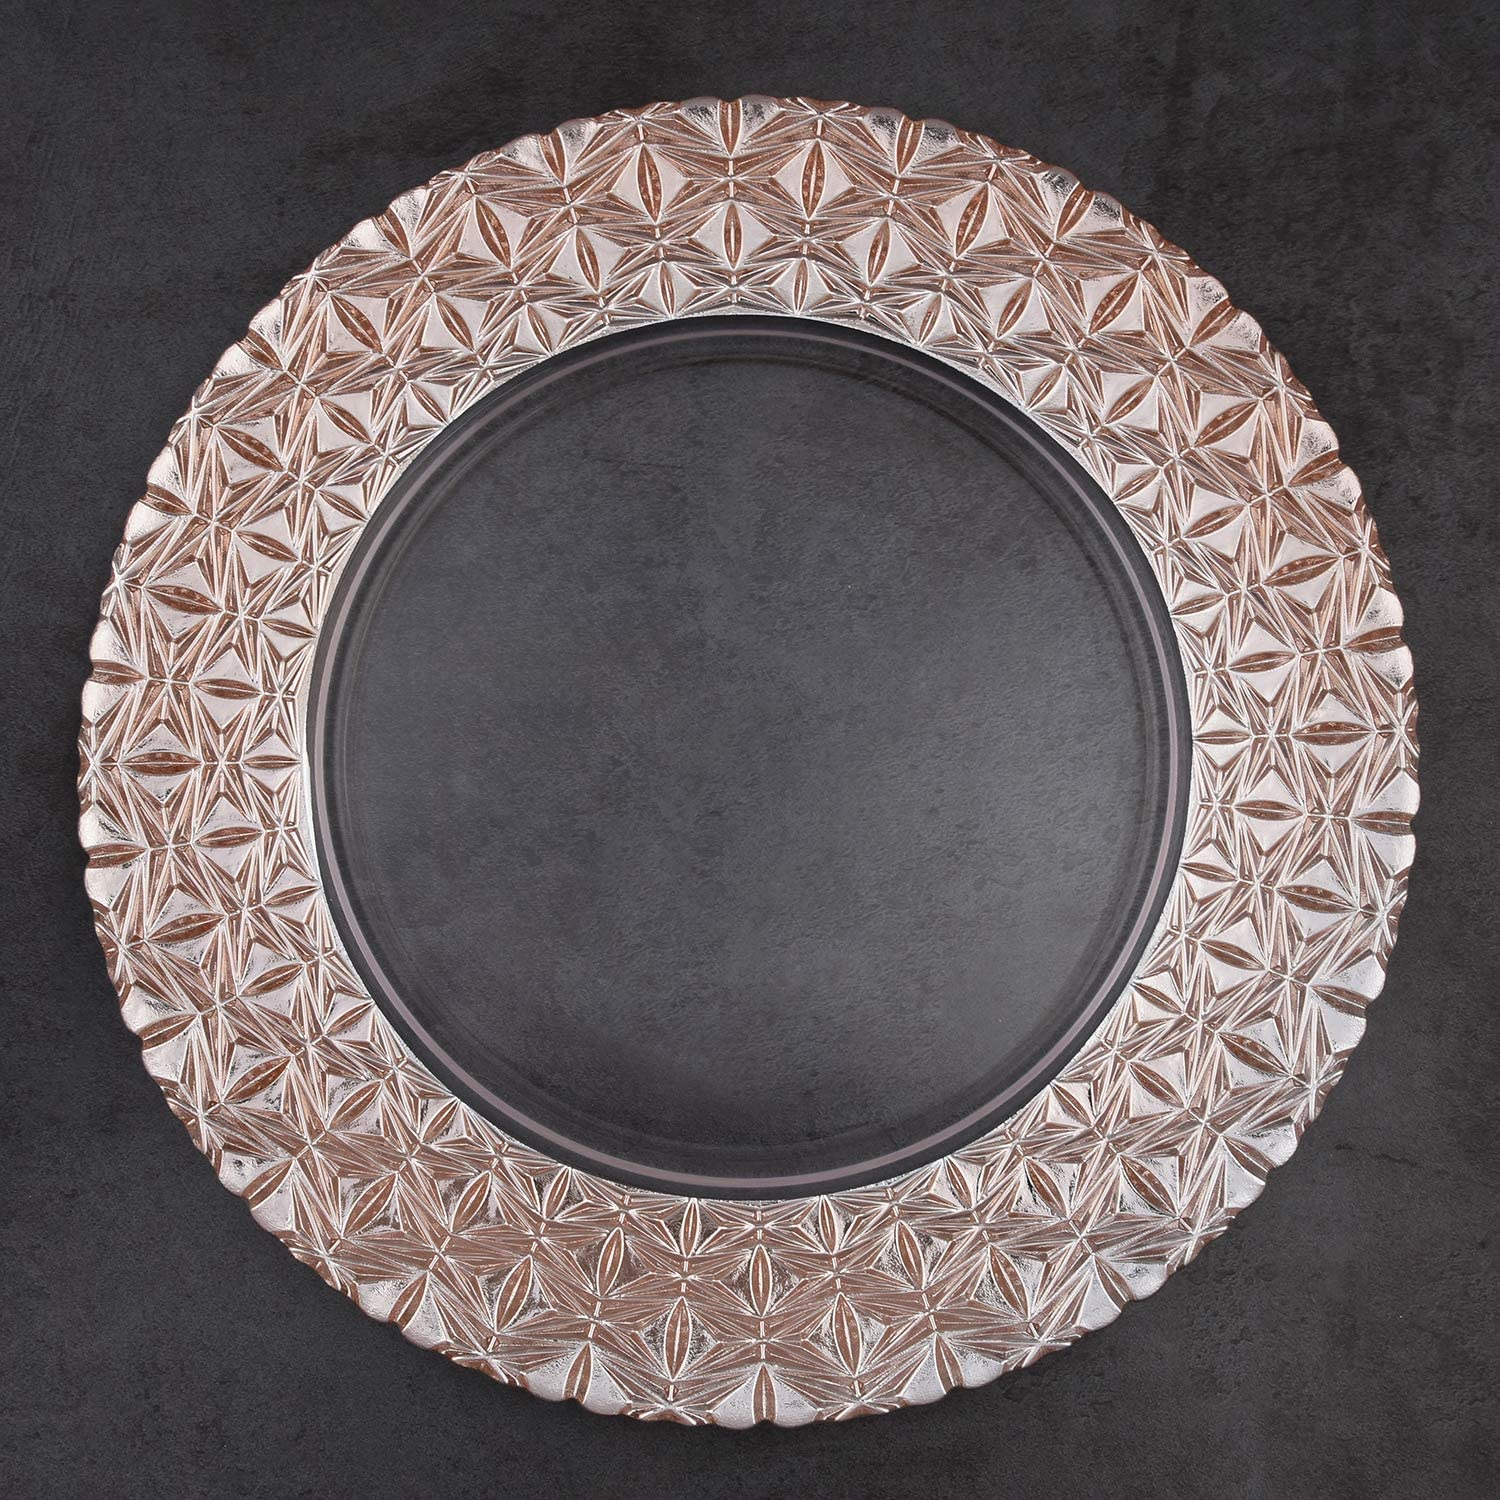 """Banquets Table Setting ALINK Glass Charger Plates 13/"""" Clear Gold Rim Plates for Dinners Set of 4 Events Decoration Receptions Weddings"""